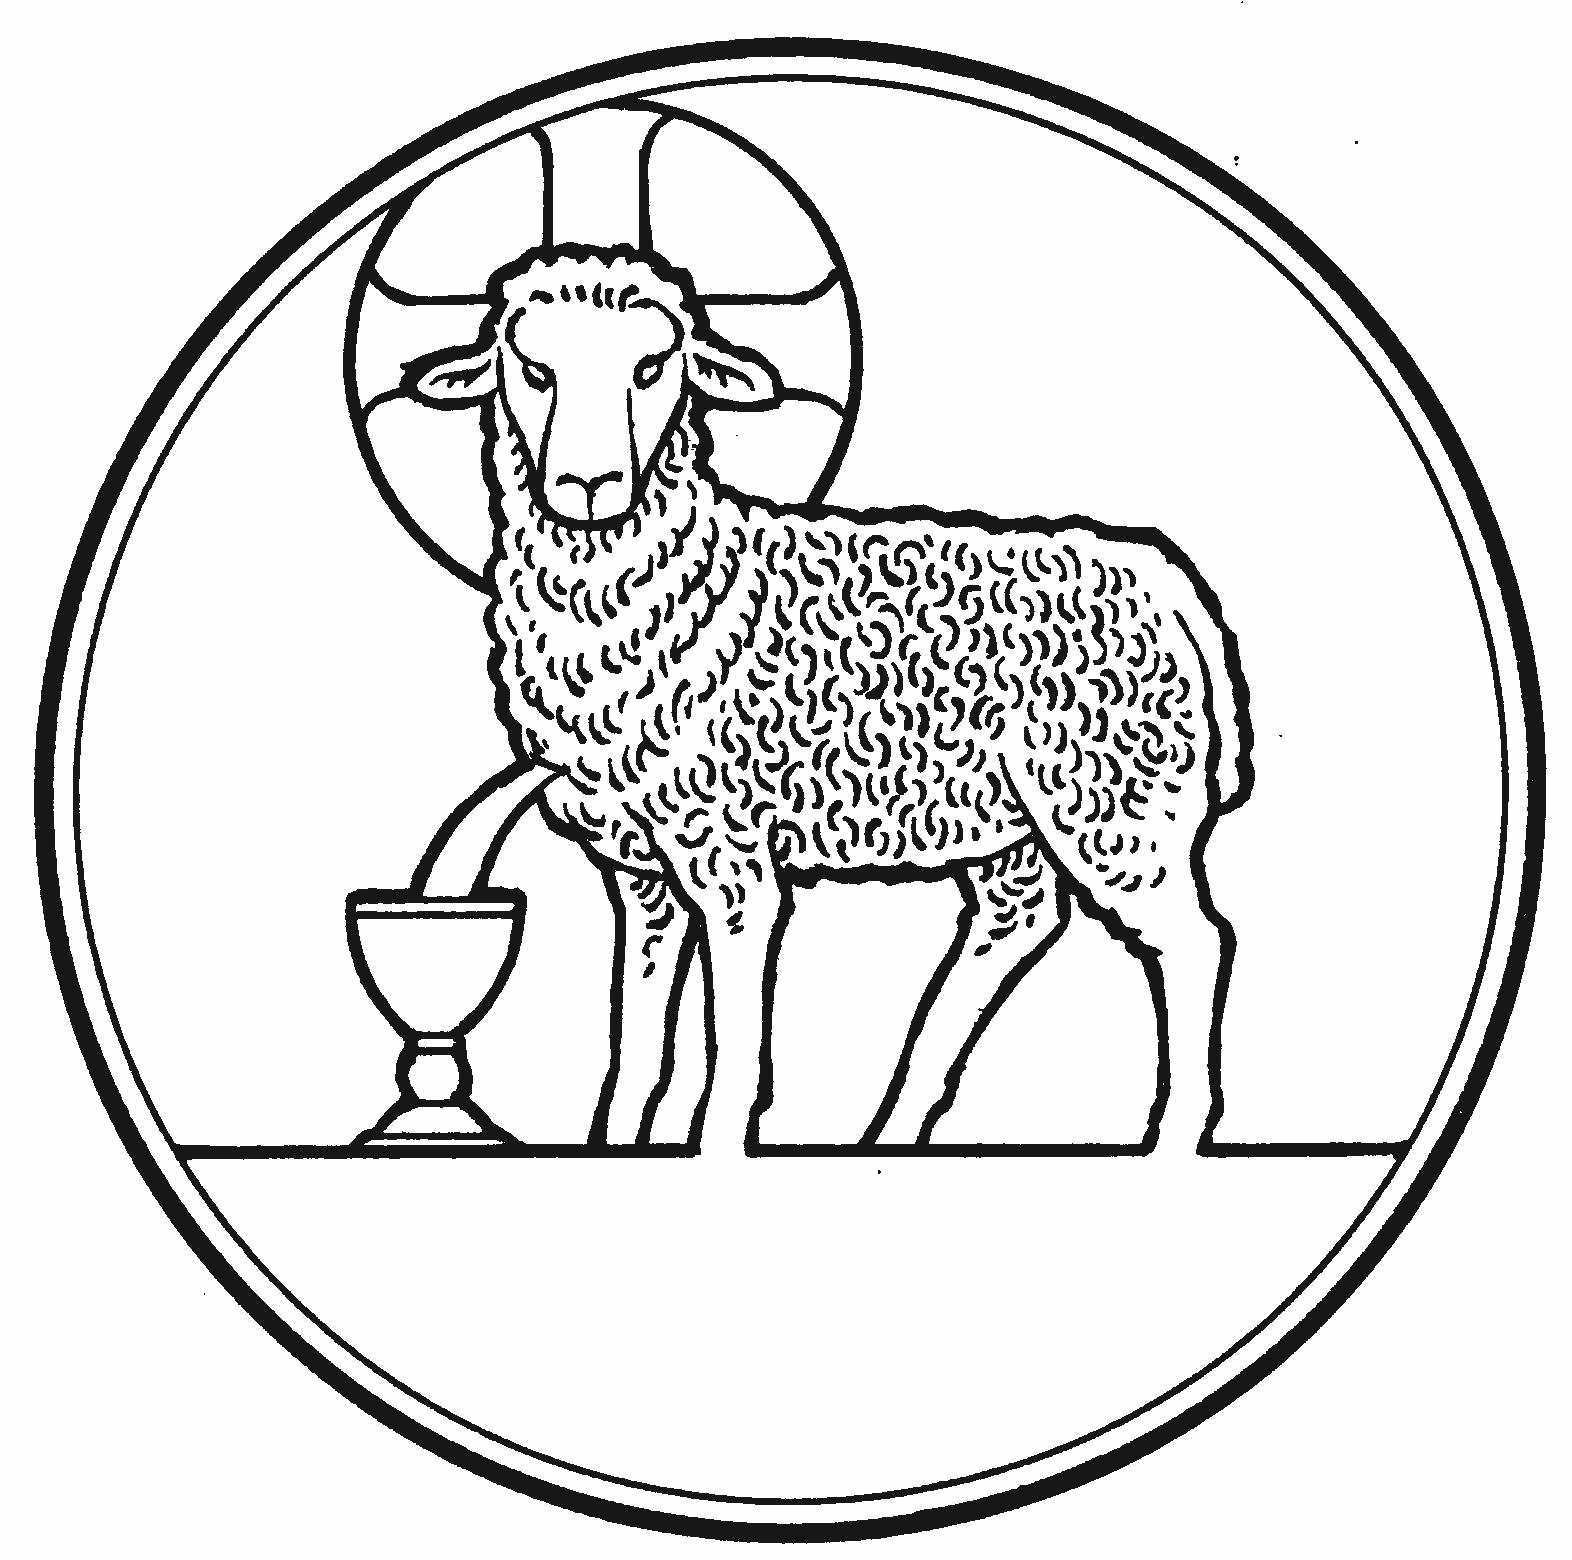 1572x1560 Lamb Of God Clip Art Black And White Take A Look